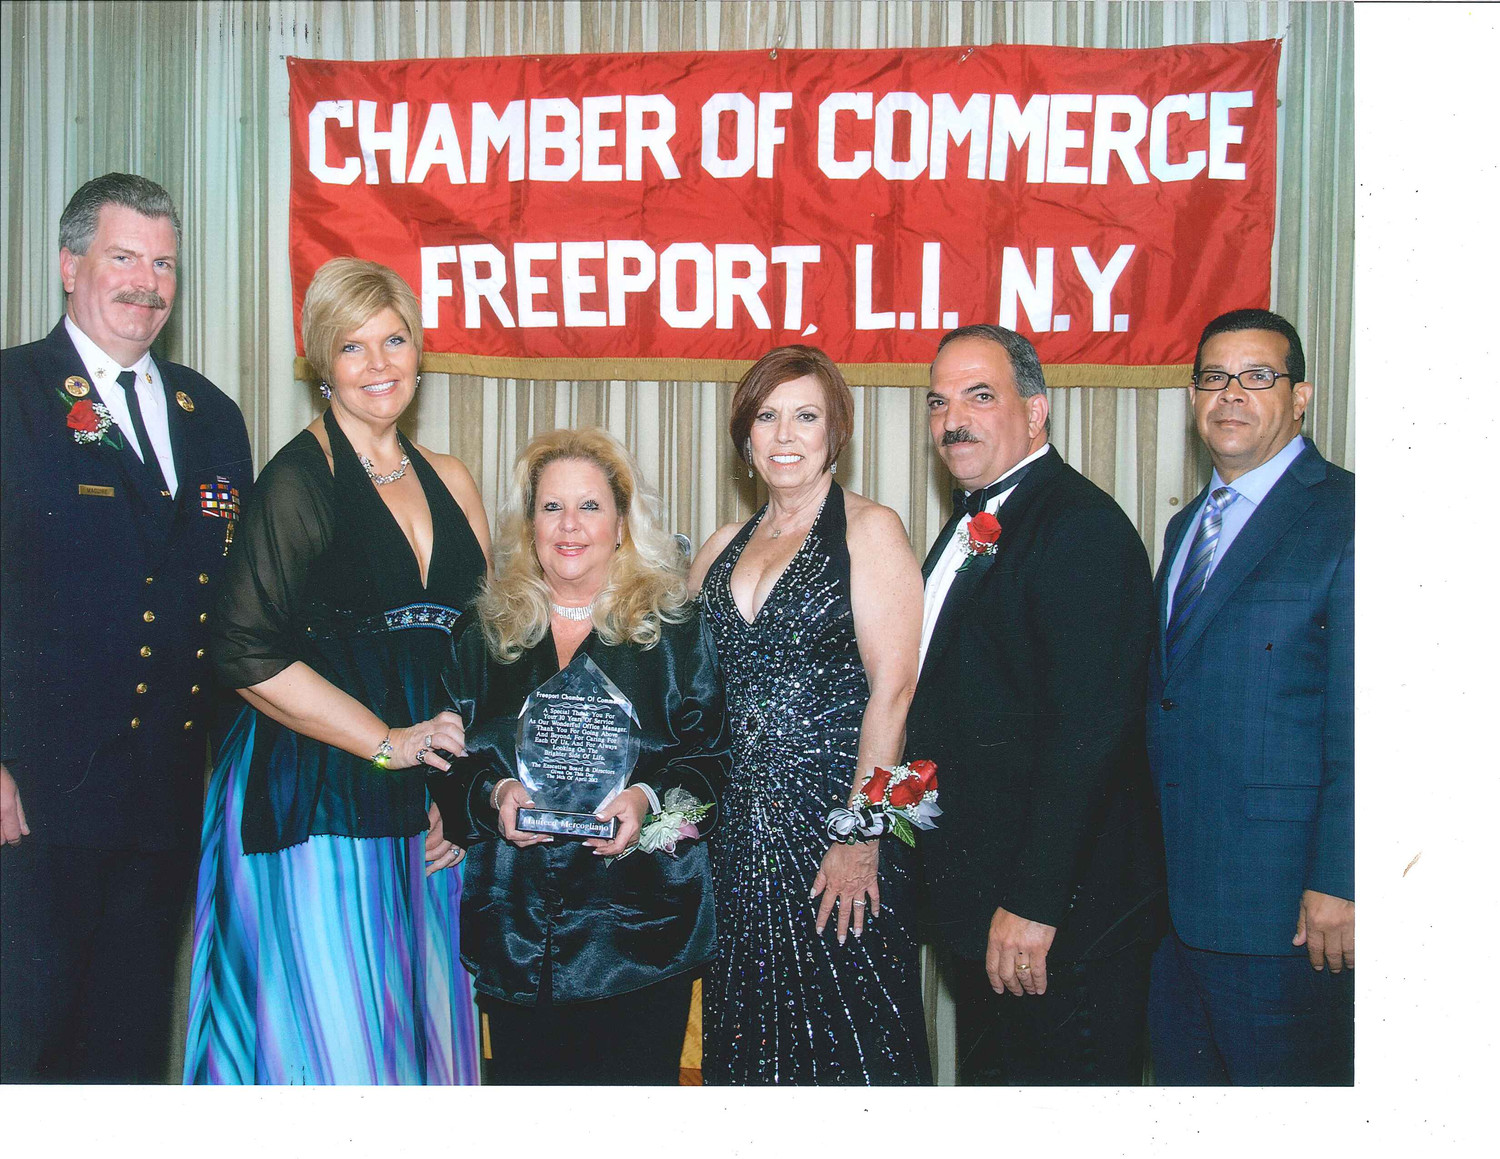 Maureen Mercogliano was given an award of recognition for 10 years of service to the Freeport Chamber of Commerce in 2011. From left were Ray Maguire, executive director of the Freeport Fire Department; Ilona Jagnow, owner of Otto's Seagrill; Mercogliano, Jerri Quibell; former chamber President John Nuzzi; and Francisco Jorge.